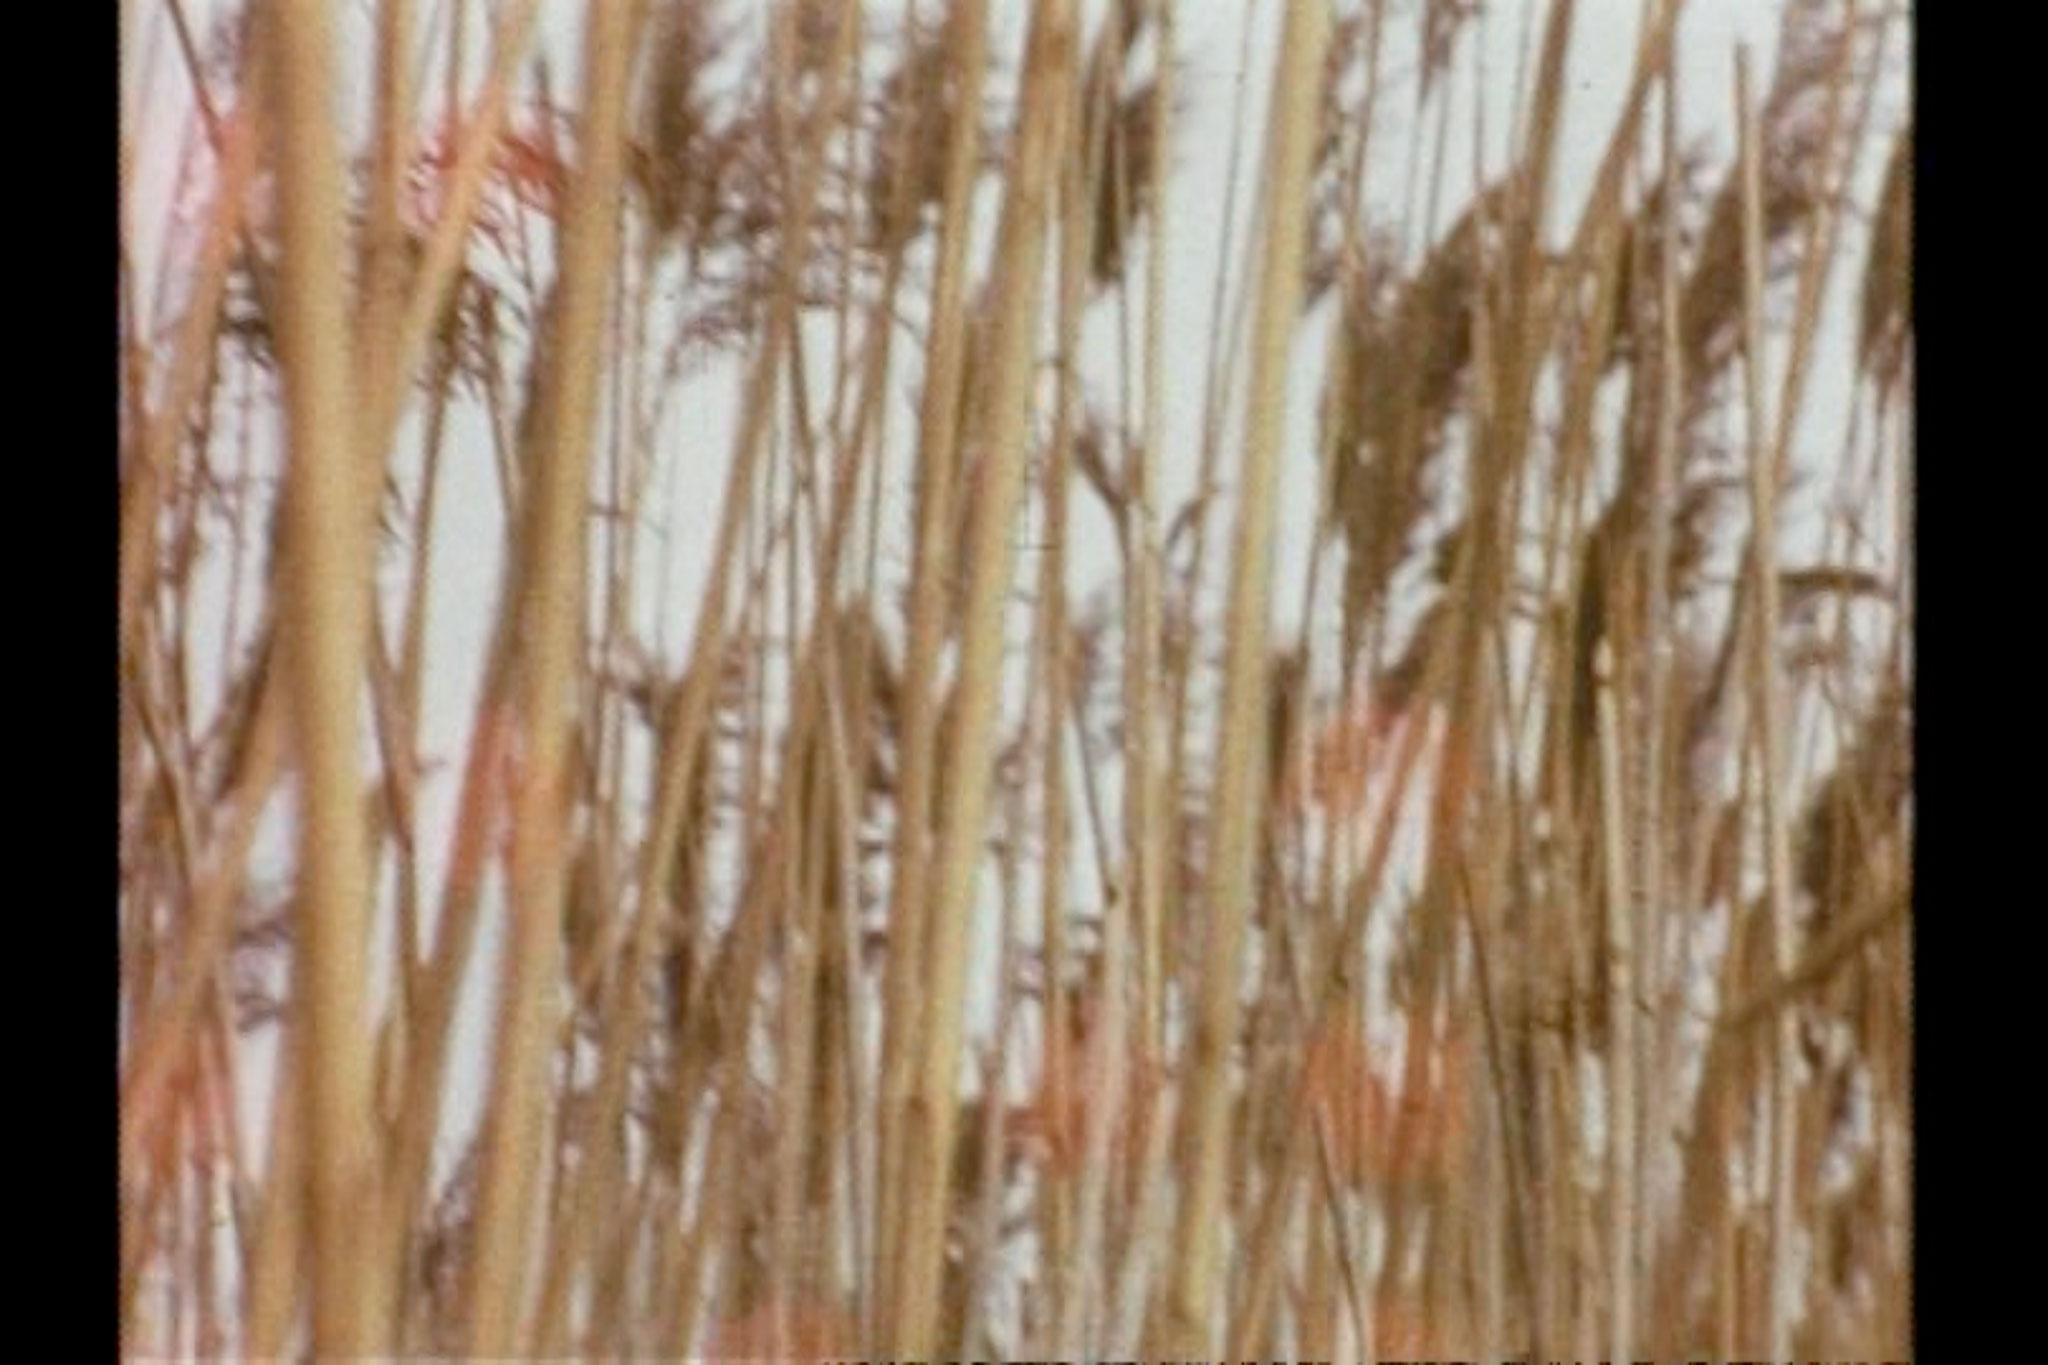 Chaotic image of many criss-crossing reeds and seed heads.